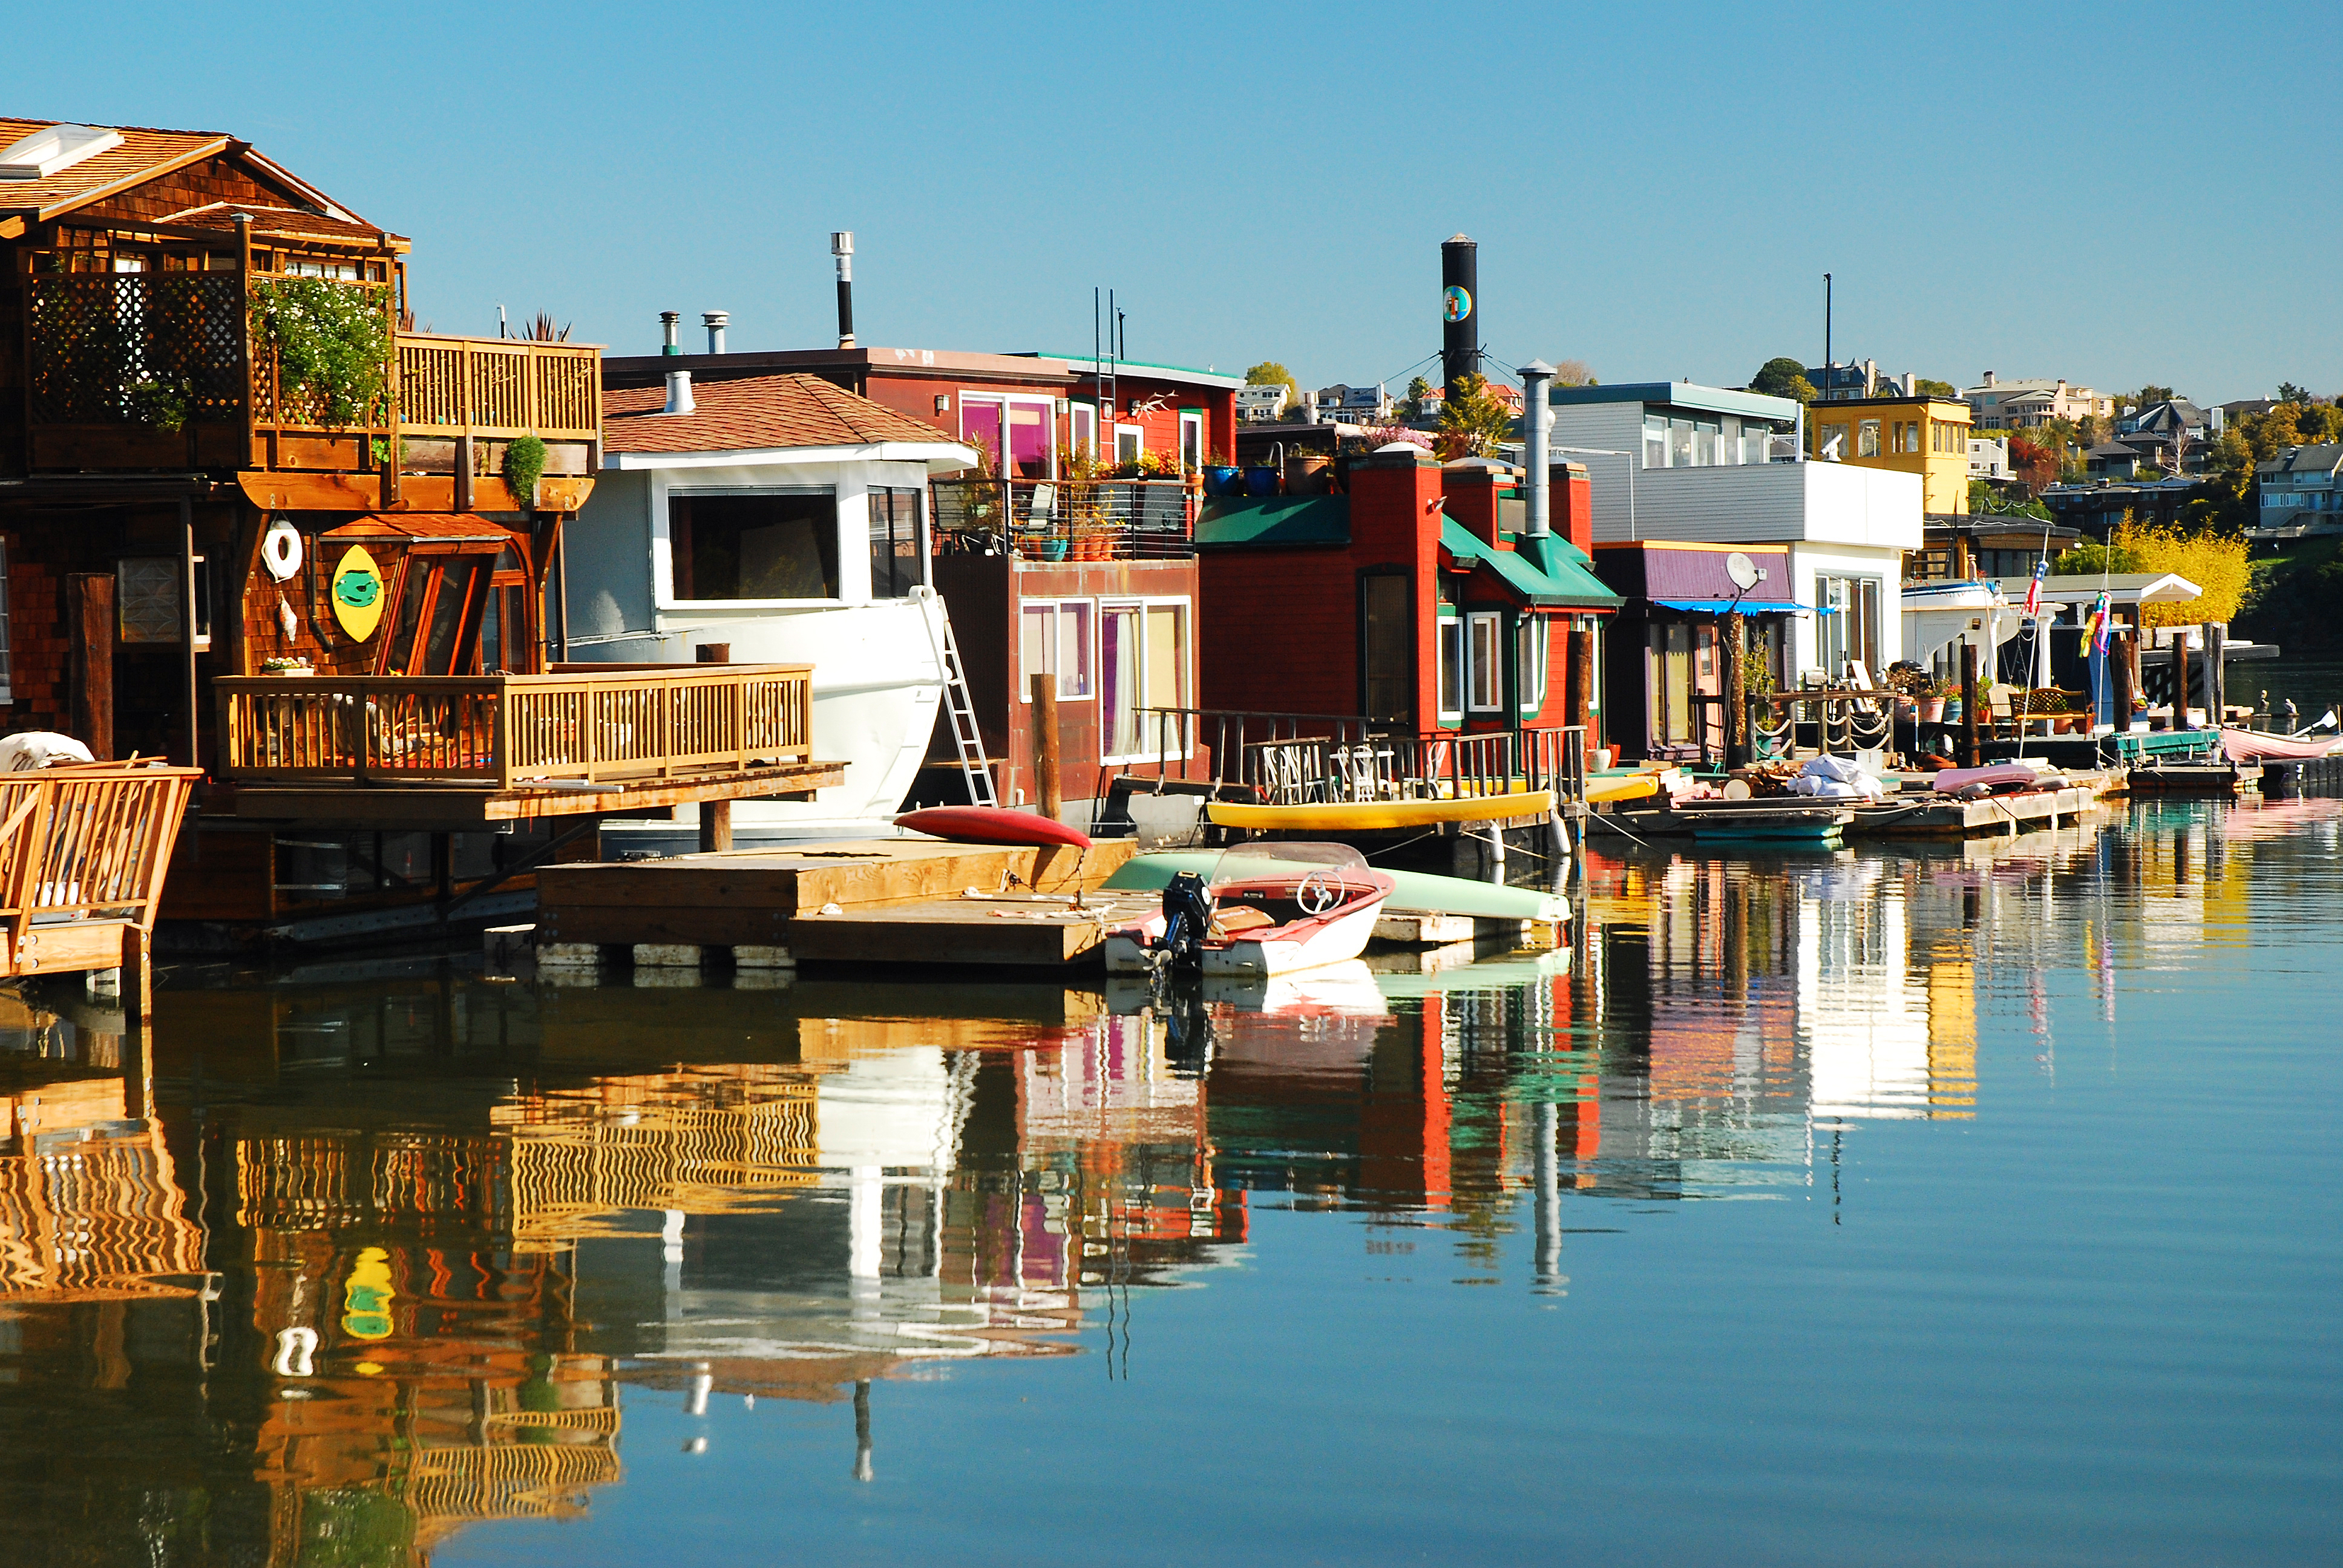 A series of colorful houseboats wading in the waters of Sausalito.